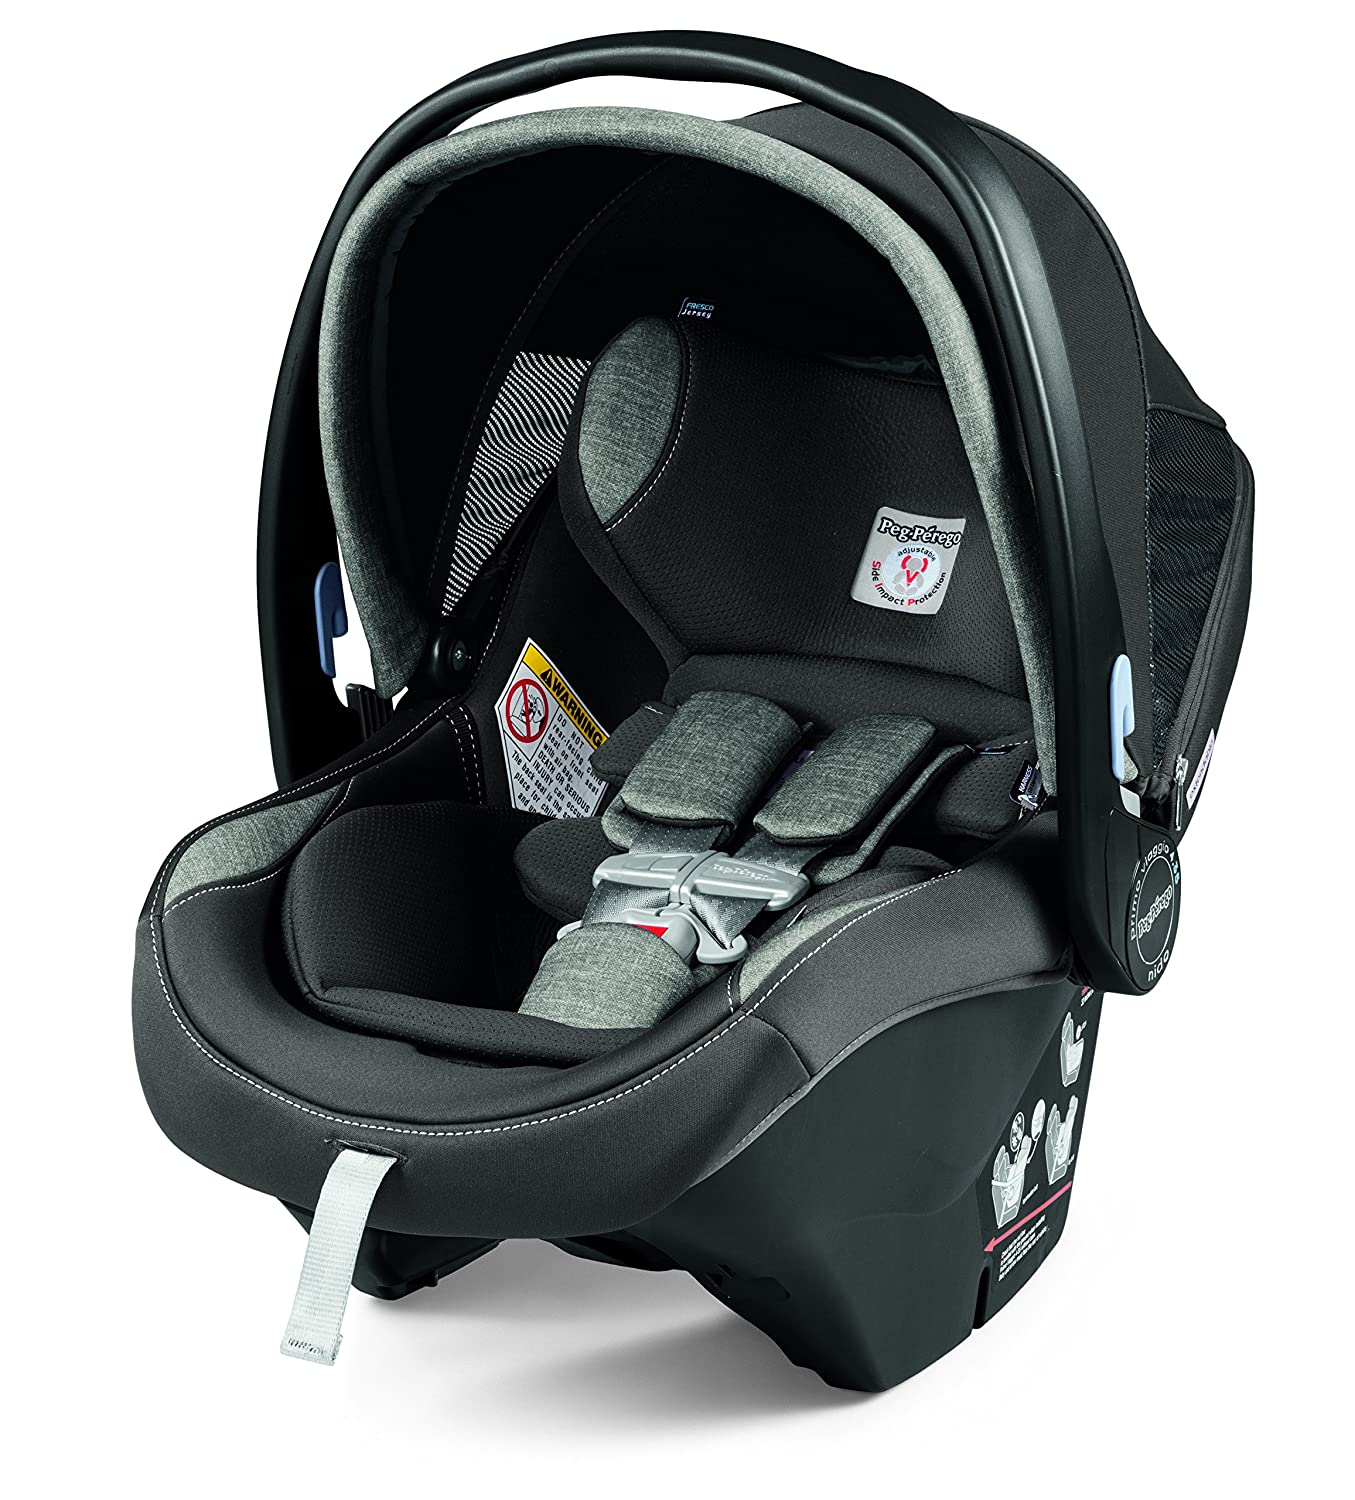 Peg Perego Primo Viaggio Nido Car Seat with Load Leg Base, Atmosphere